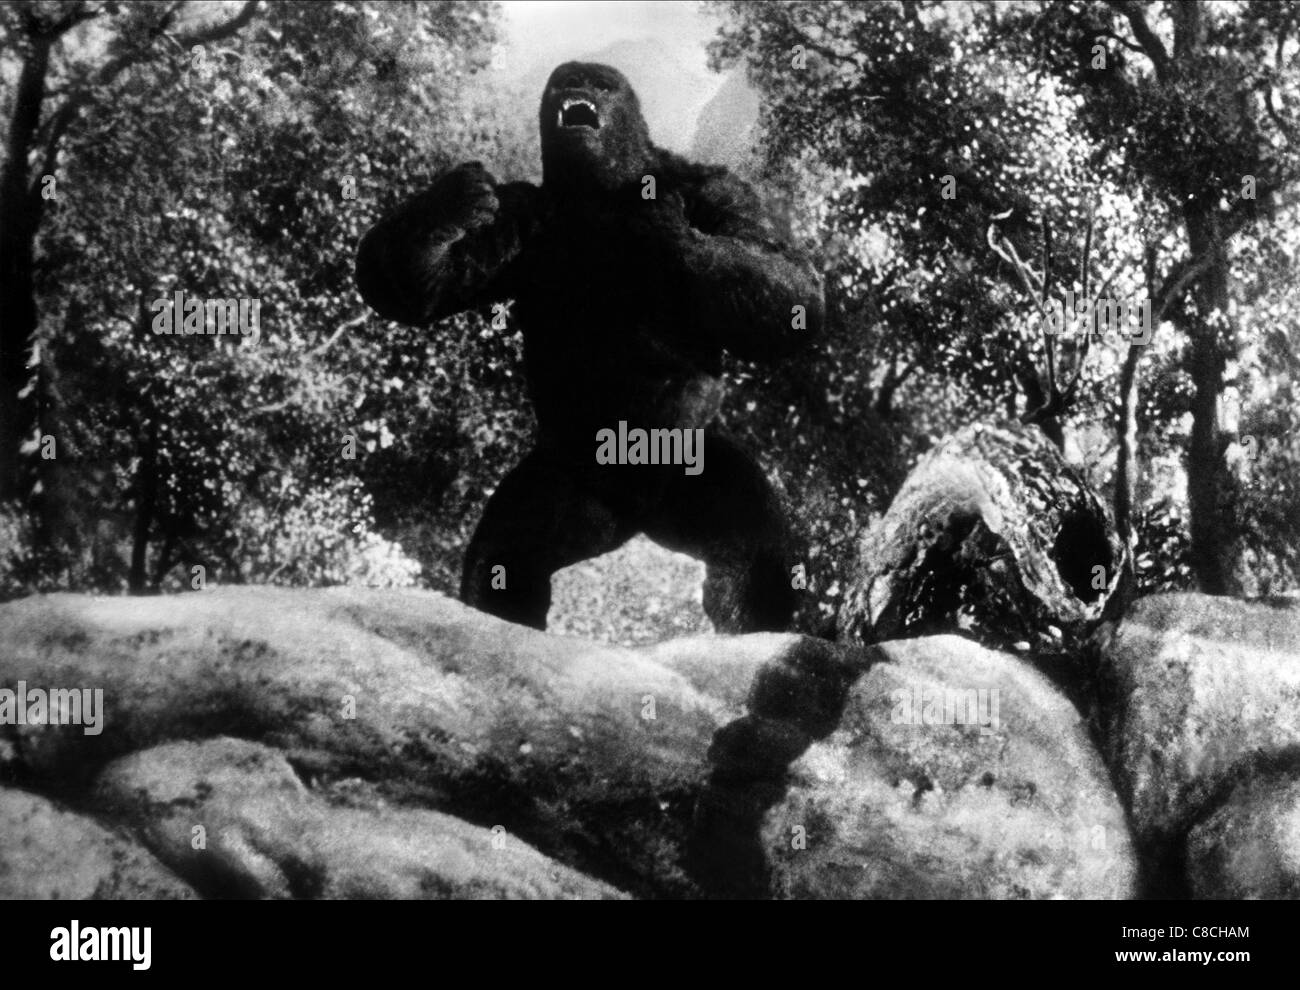 GORILLA MIGHTY JOE YOUNG (1949) - Stock Image